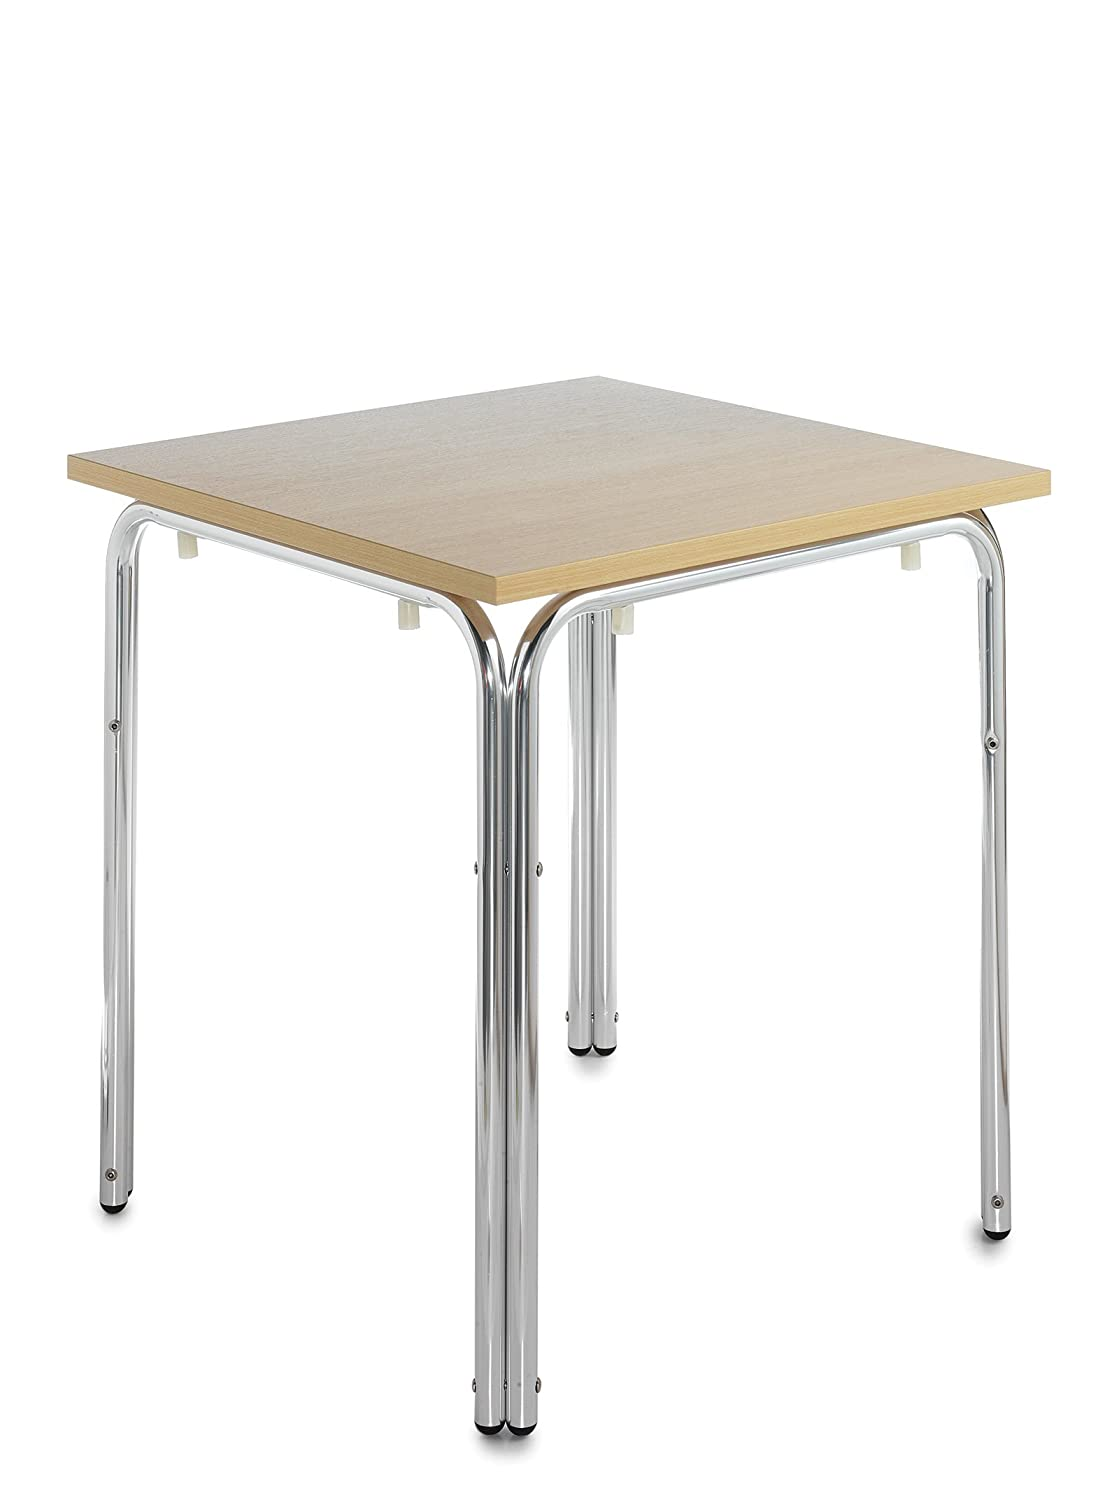 DAMS Nantas Aluminium Stacking Square Table, Wood, Beech, 70 x 70 cm SOF300T1-C